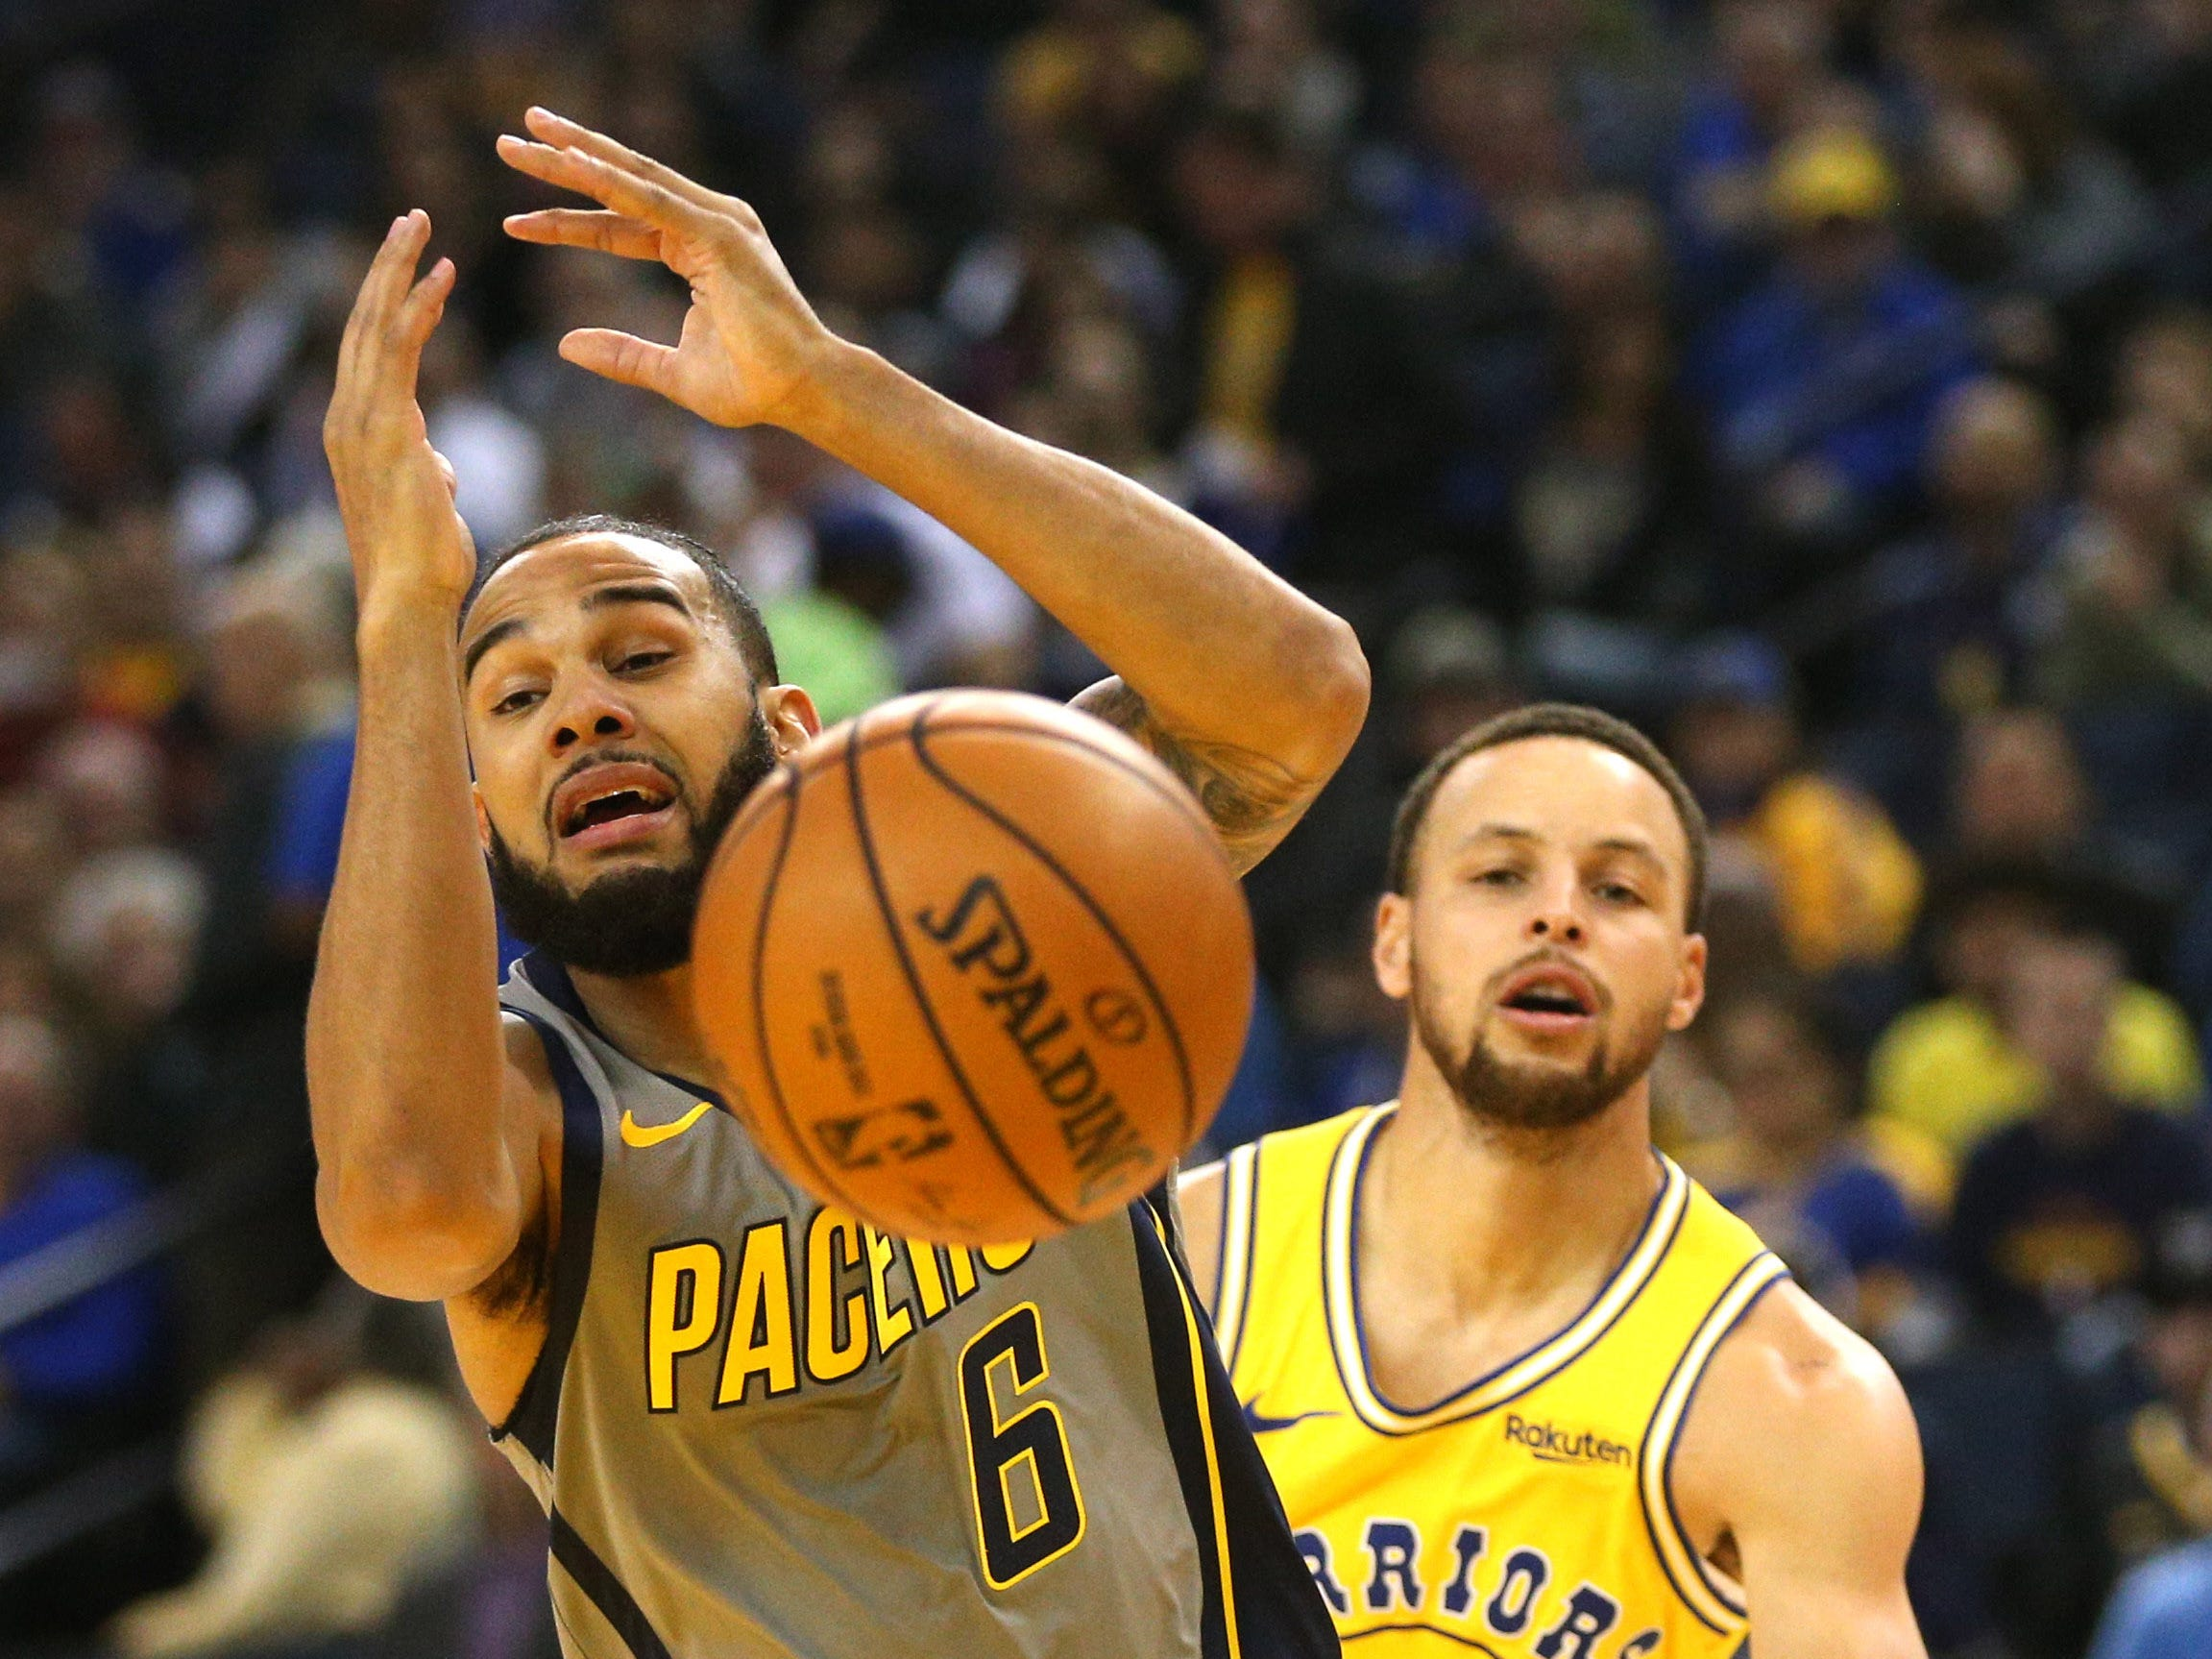 Mar 21, 2019; Oakland, CA, USA; Indiana Pacers guard Cory Joseph (6) loses control of the ball next to Golden State Warriors guard Stephen Curry (30) in the first quarter at Oracle Arena.